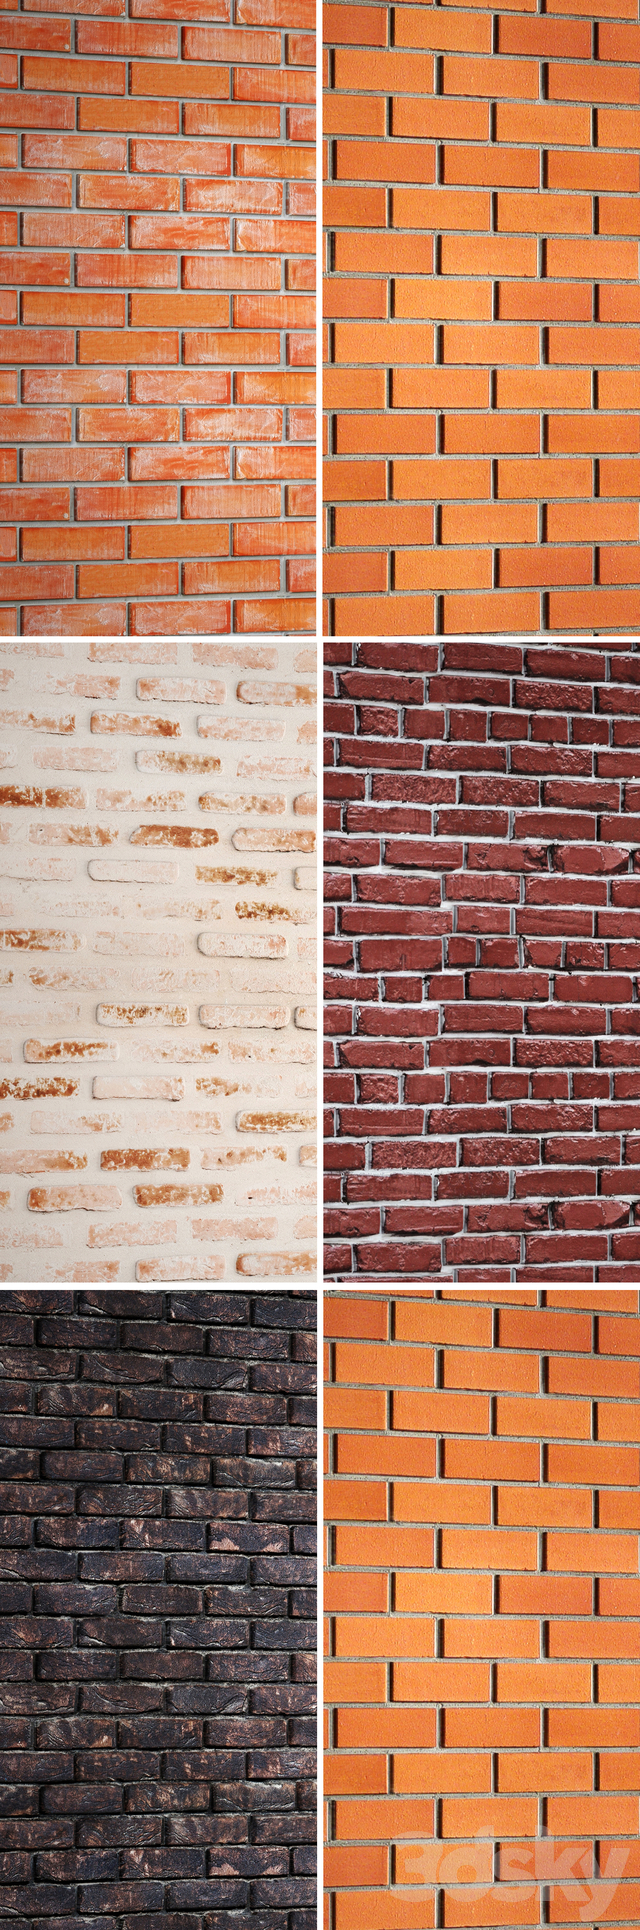 A collection of brick walls. 2